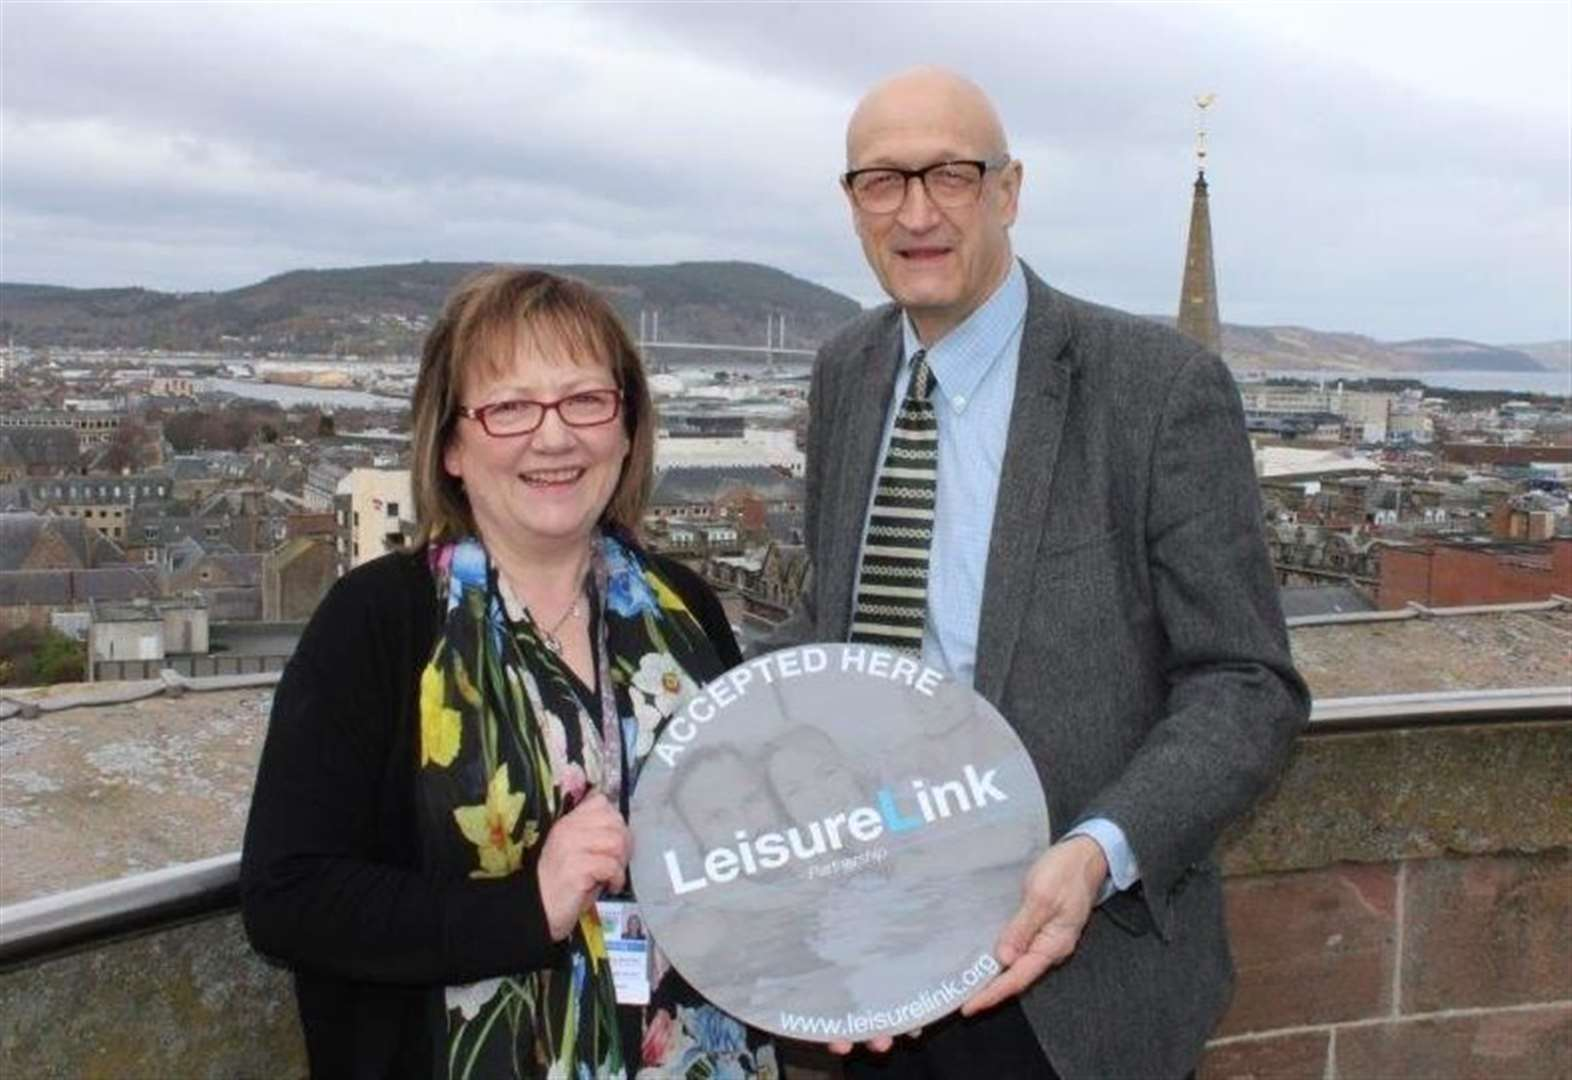 New leisure partnership is a first for Scotland